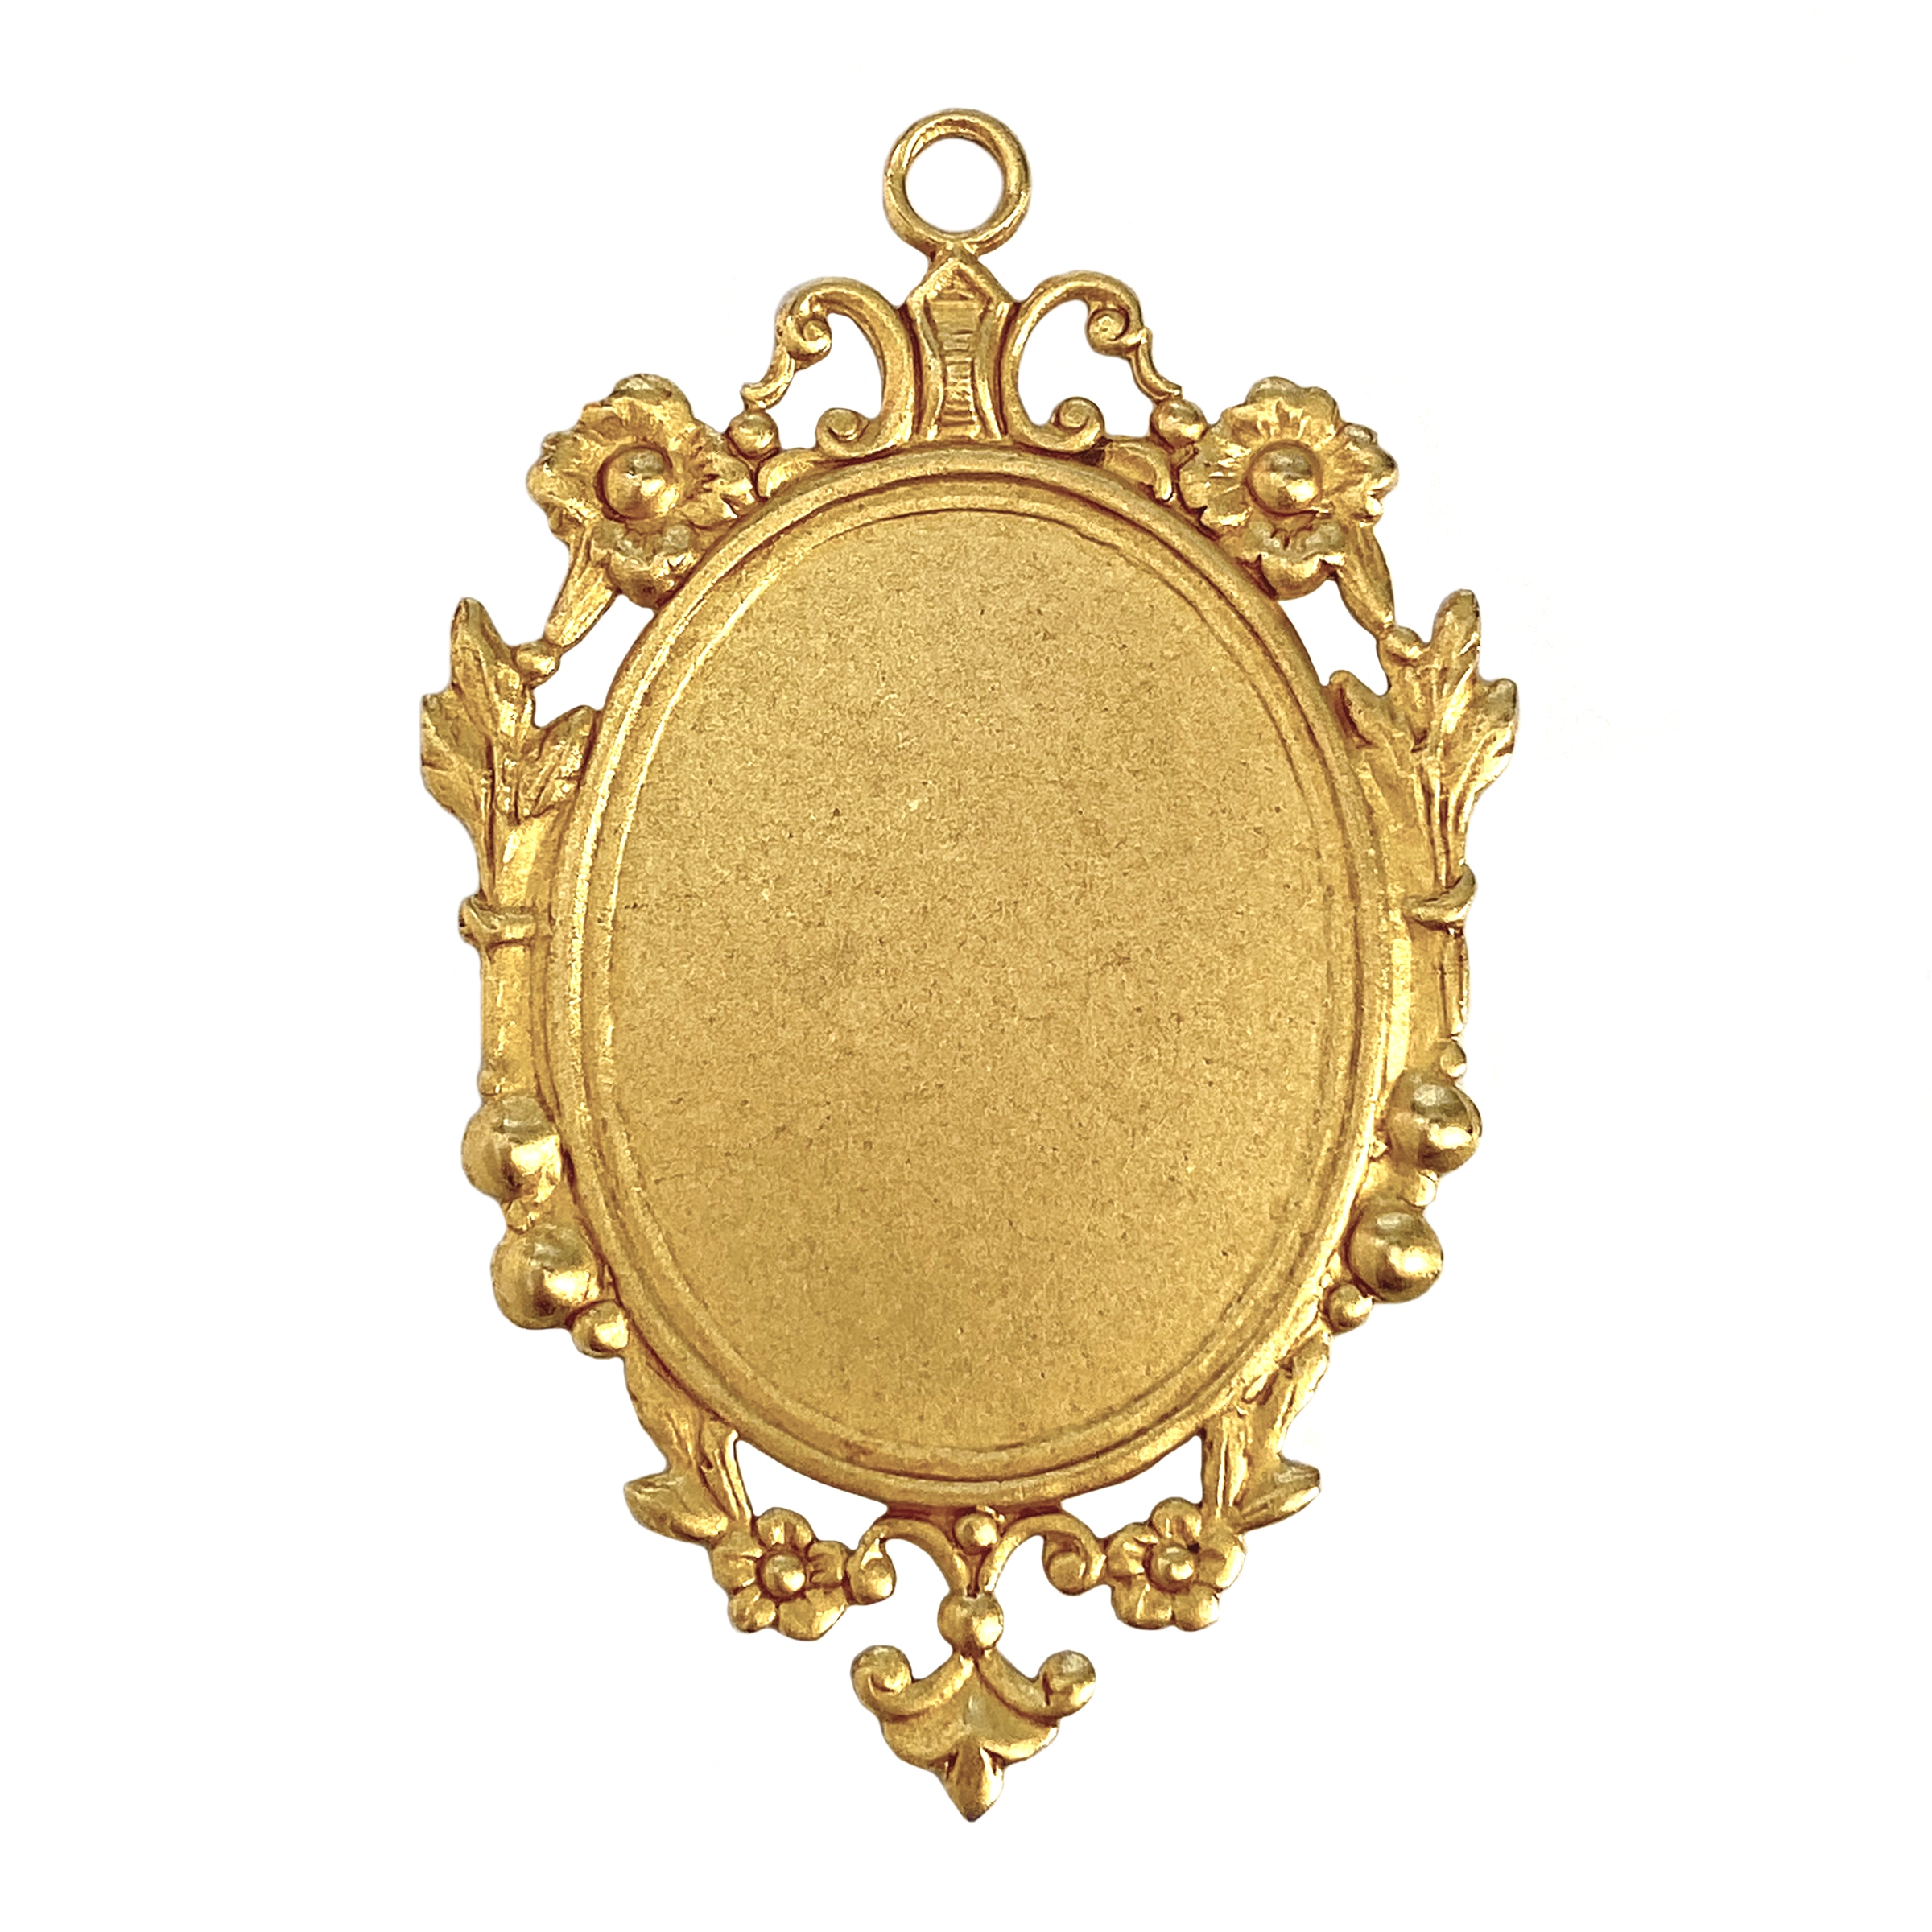 Victorian floral pendant mount, classic gold, gold, mount, pendant, floral border, brass, Victorian mount, Victorian border, 55x36mm, pendant mount, floral pendant mount, brass stamping, US-made, jewelry making, jewelry supplies, vintage, 01236